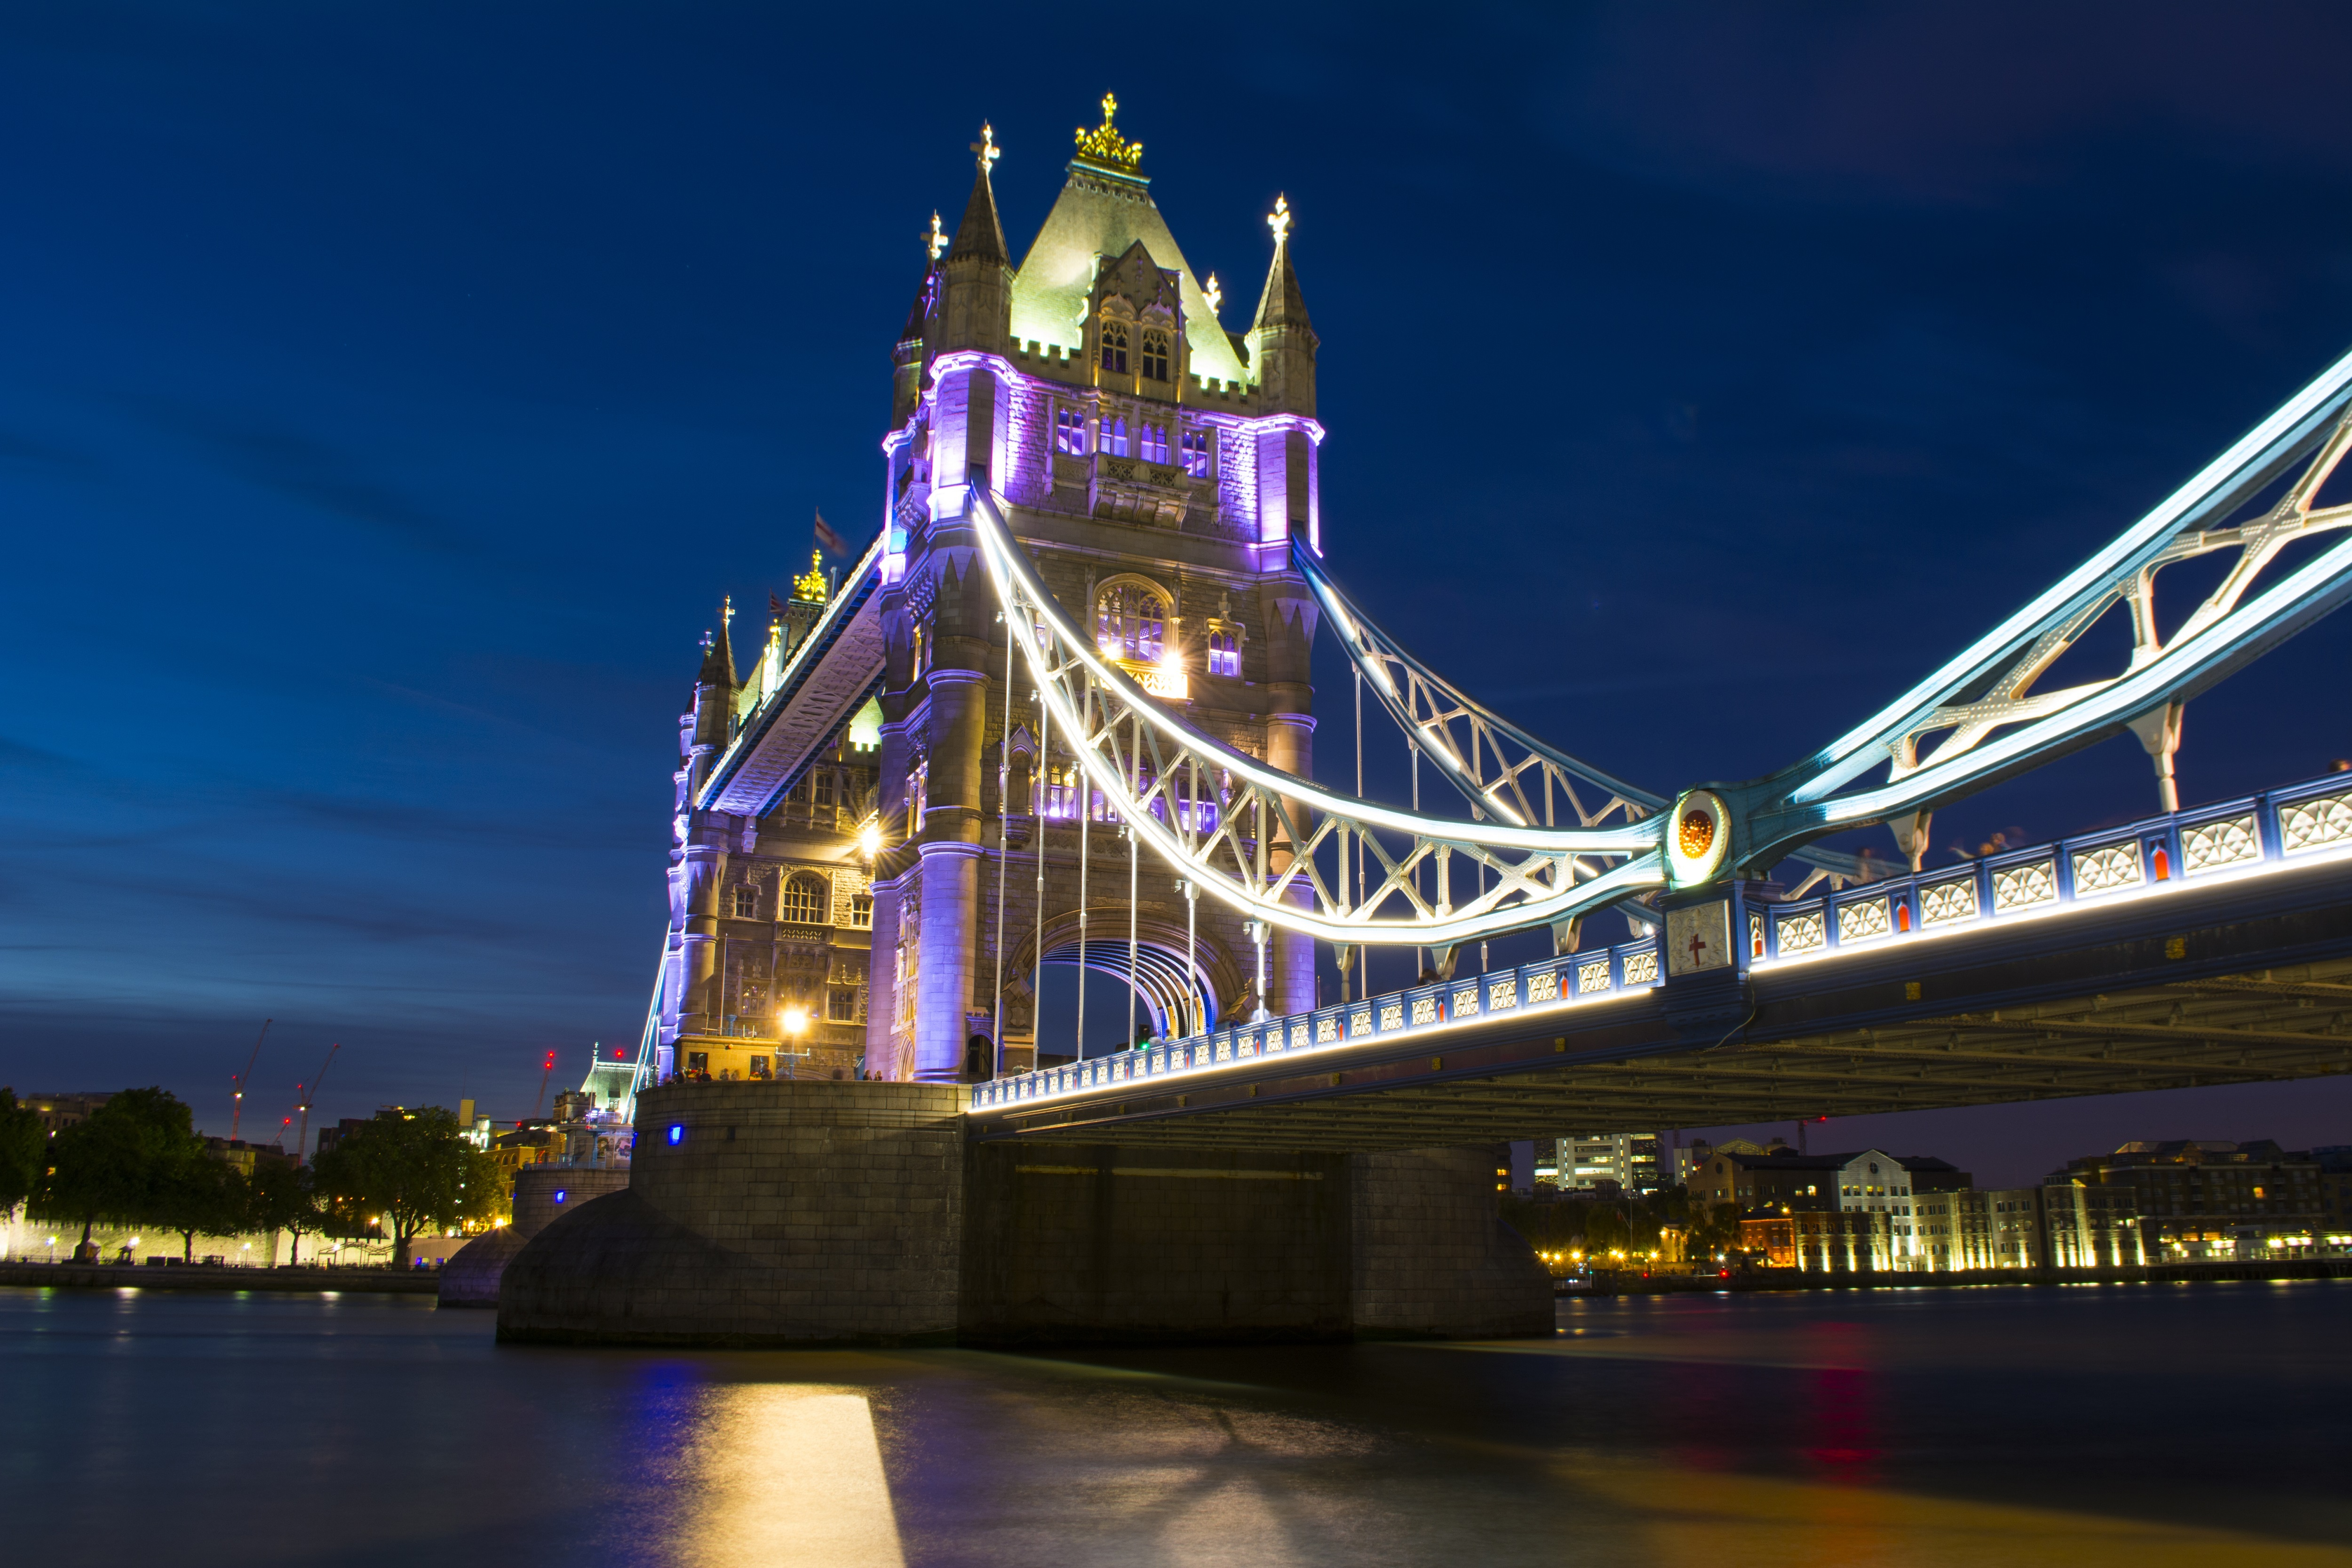 Tower Bridge at Night, Architecture, Bridge, City, Construction, HQ Photo